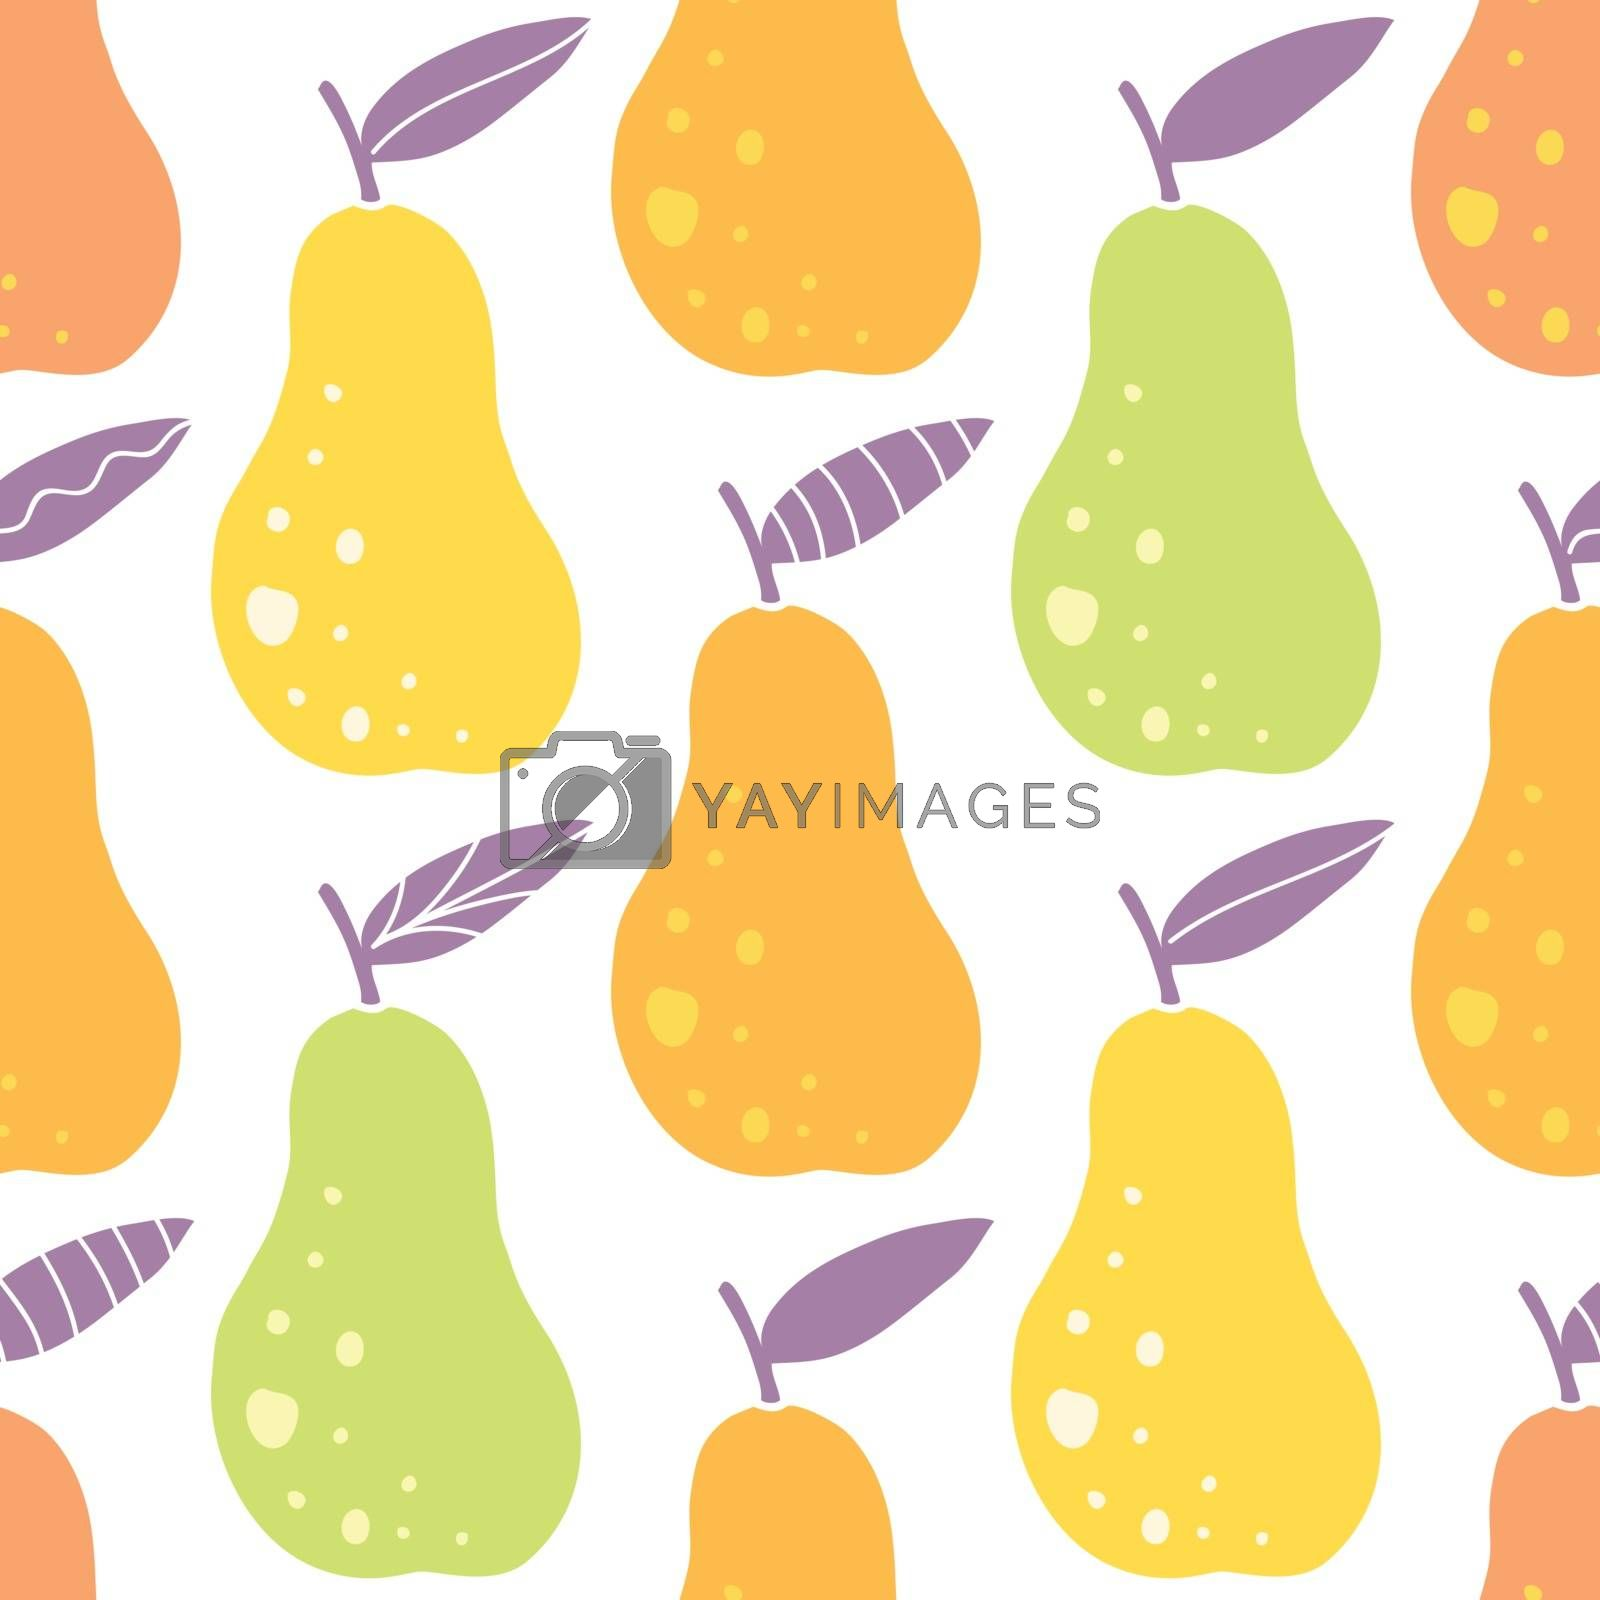 Vector yummy pears seamless pattern background graphic design